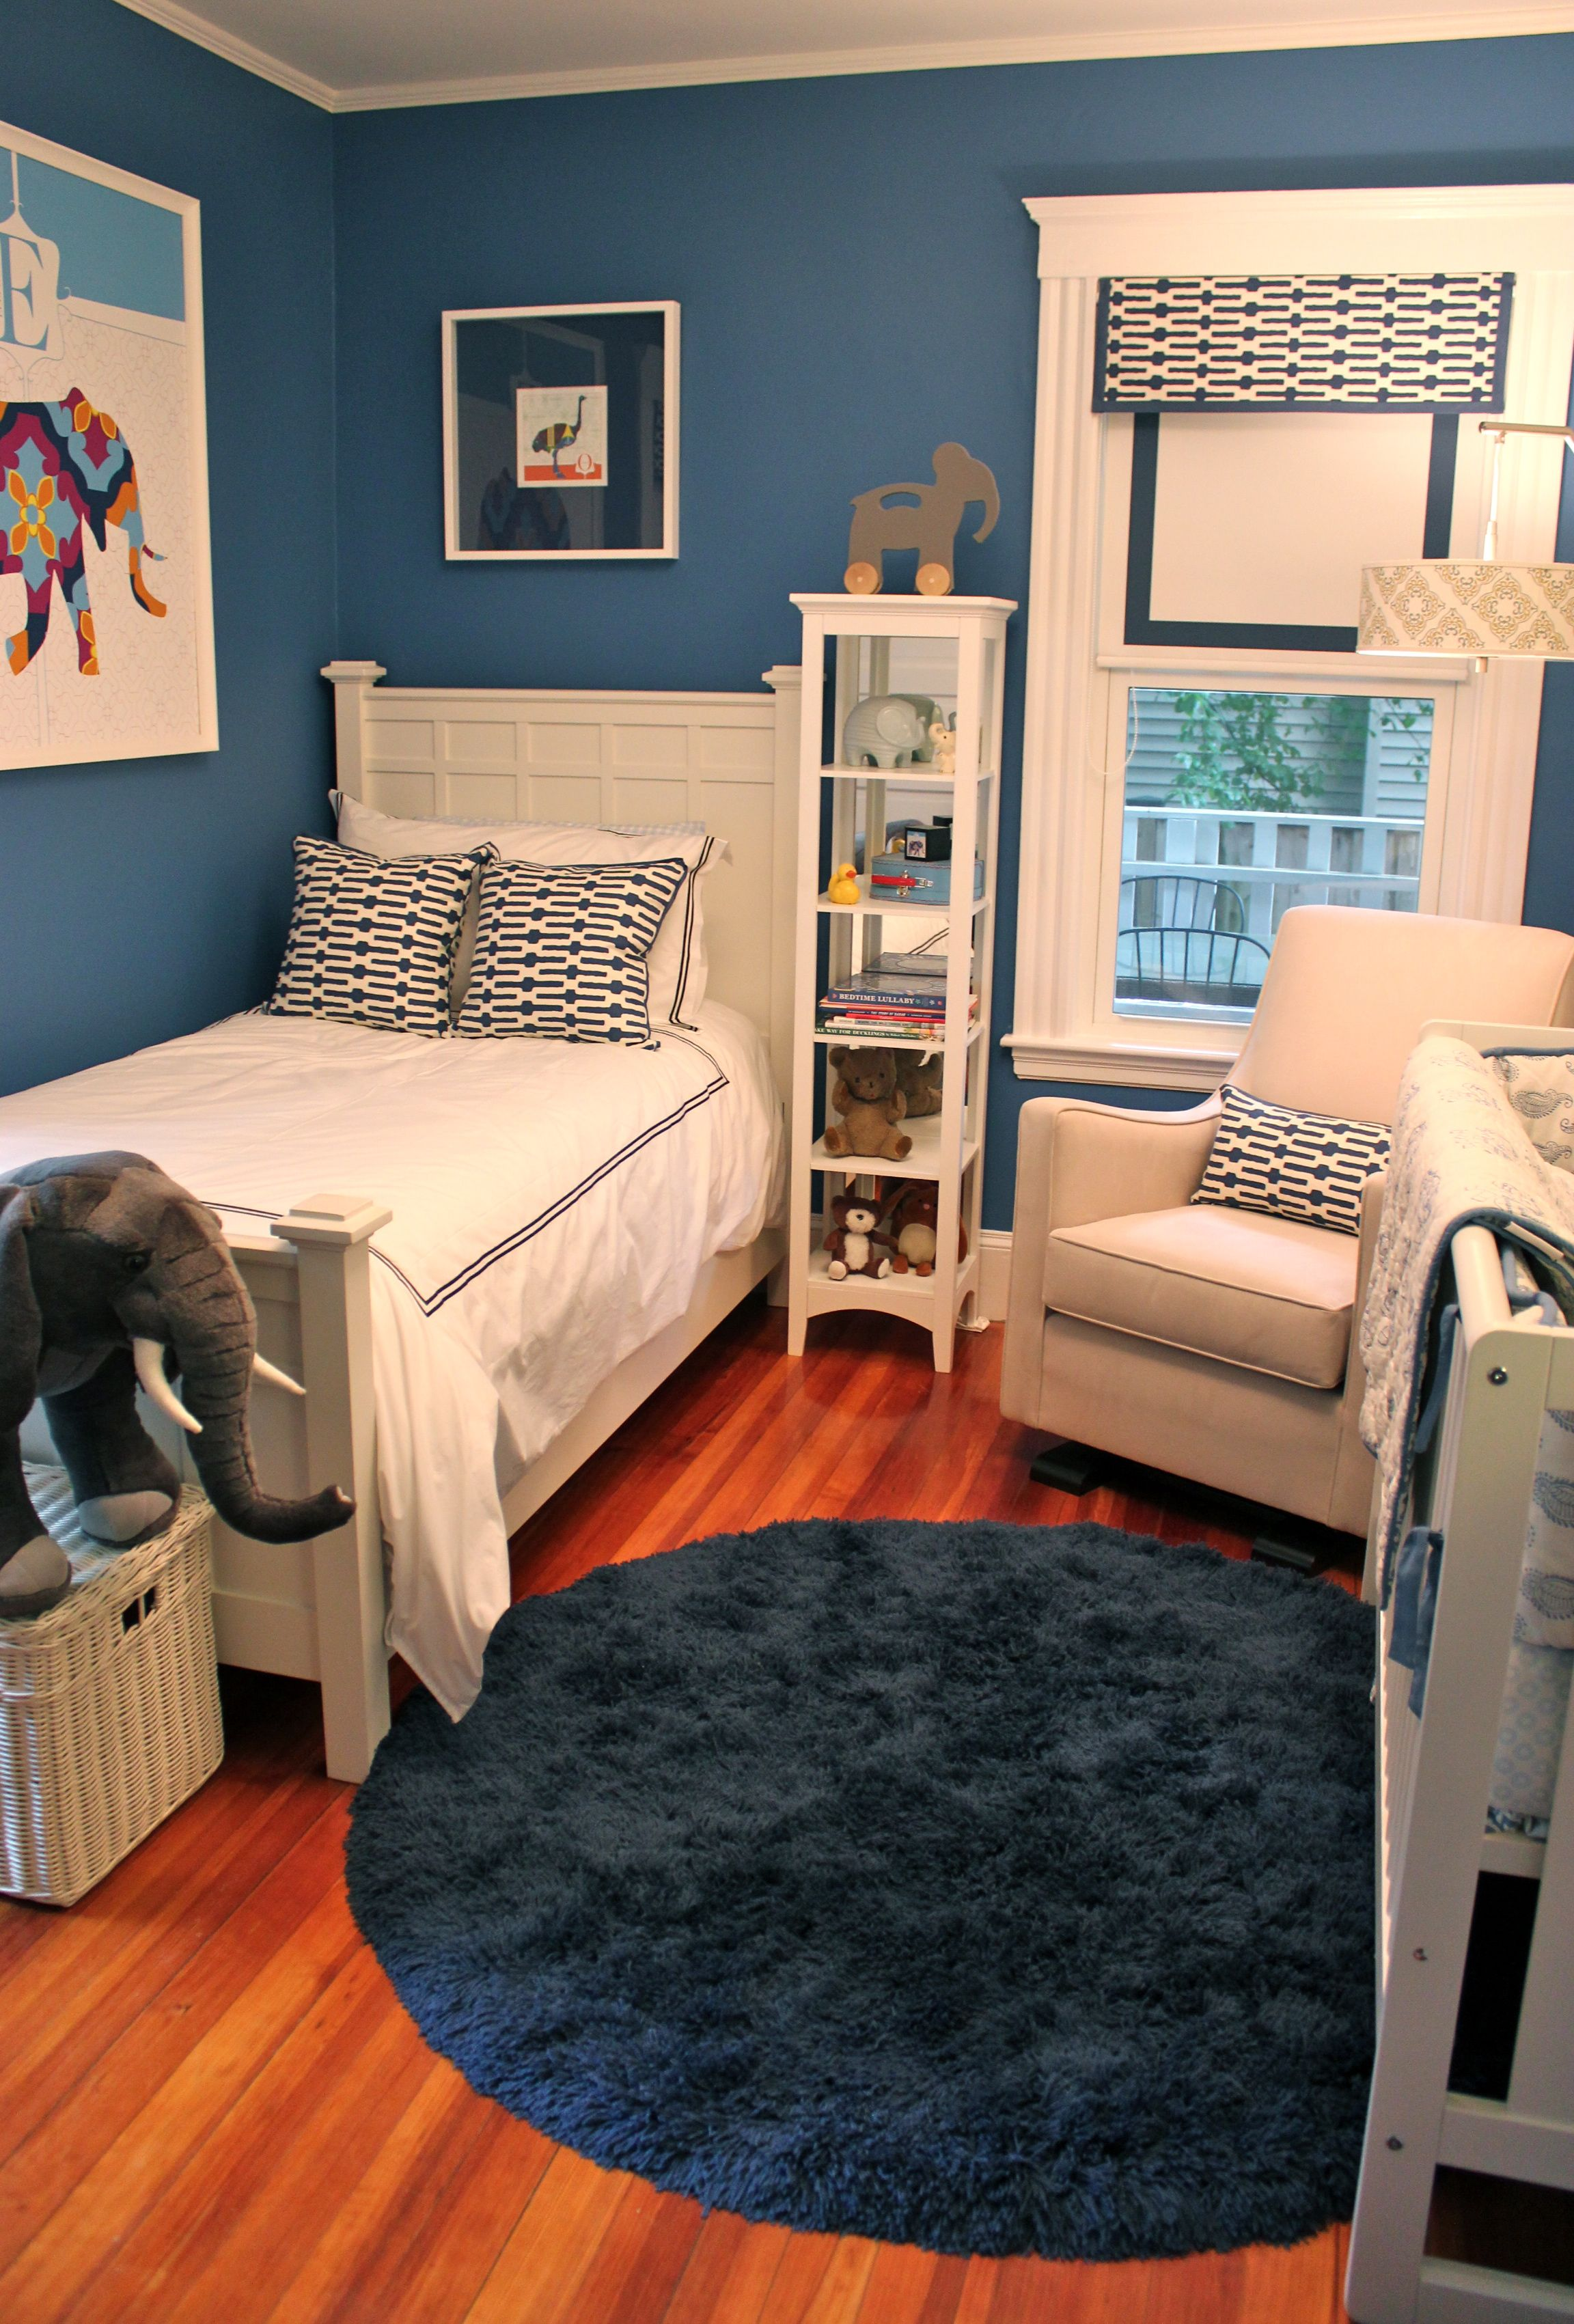 A Room for Bebe  Shared bedroom, Small bedroom, Home decor bedroom